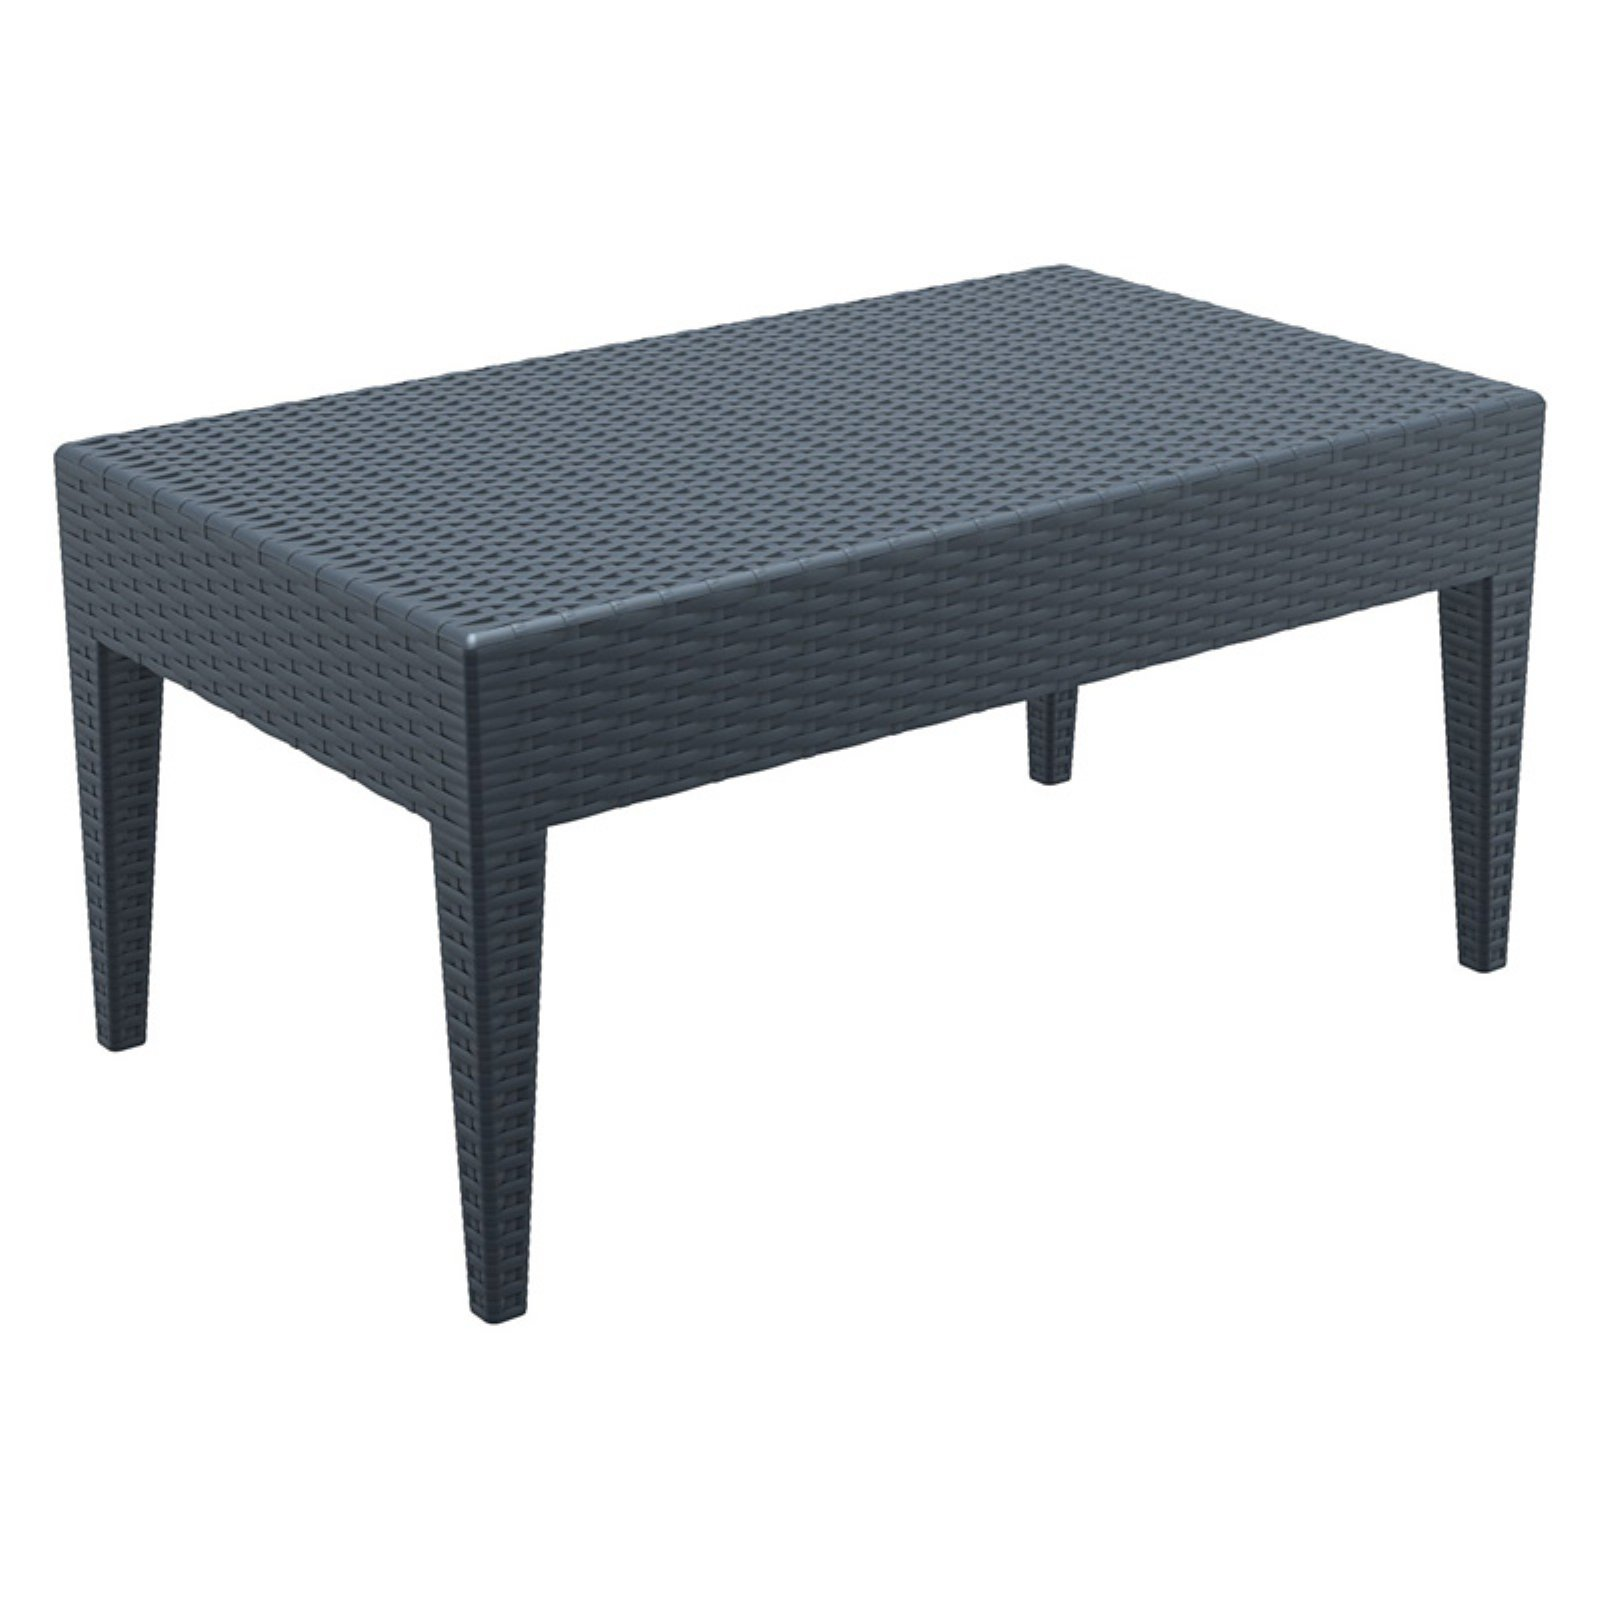 Siesta ISP855 Miami Rectangle Resin Coffee Table by Compamia